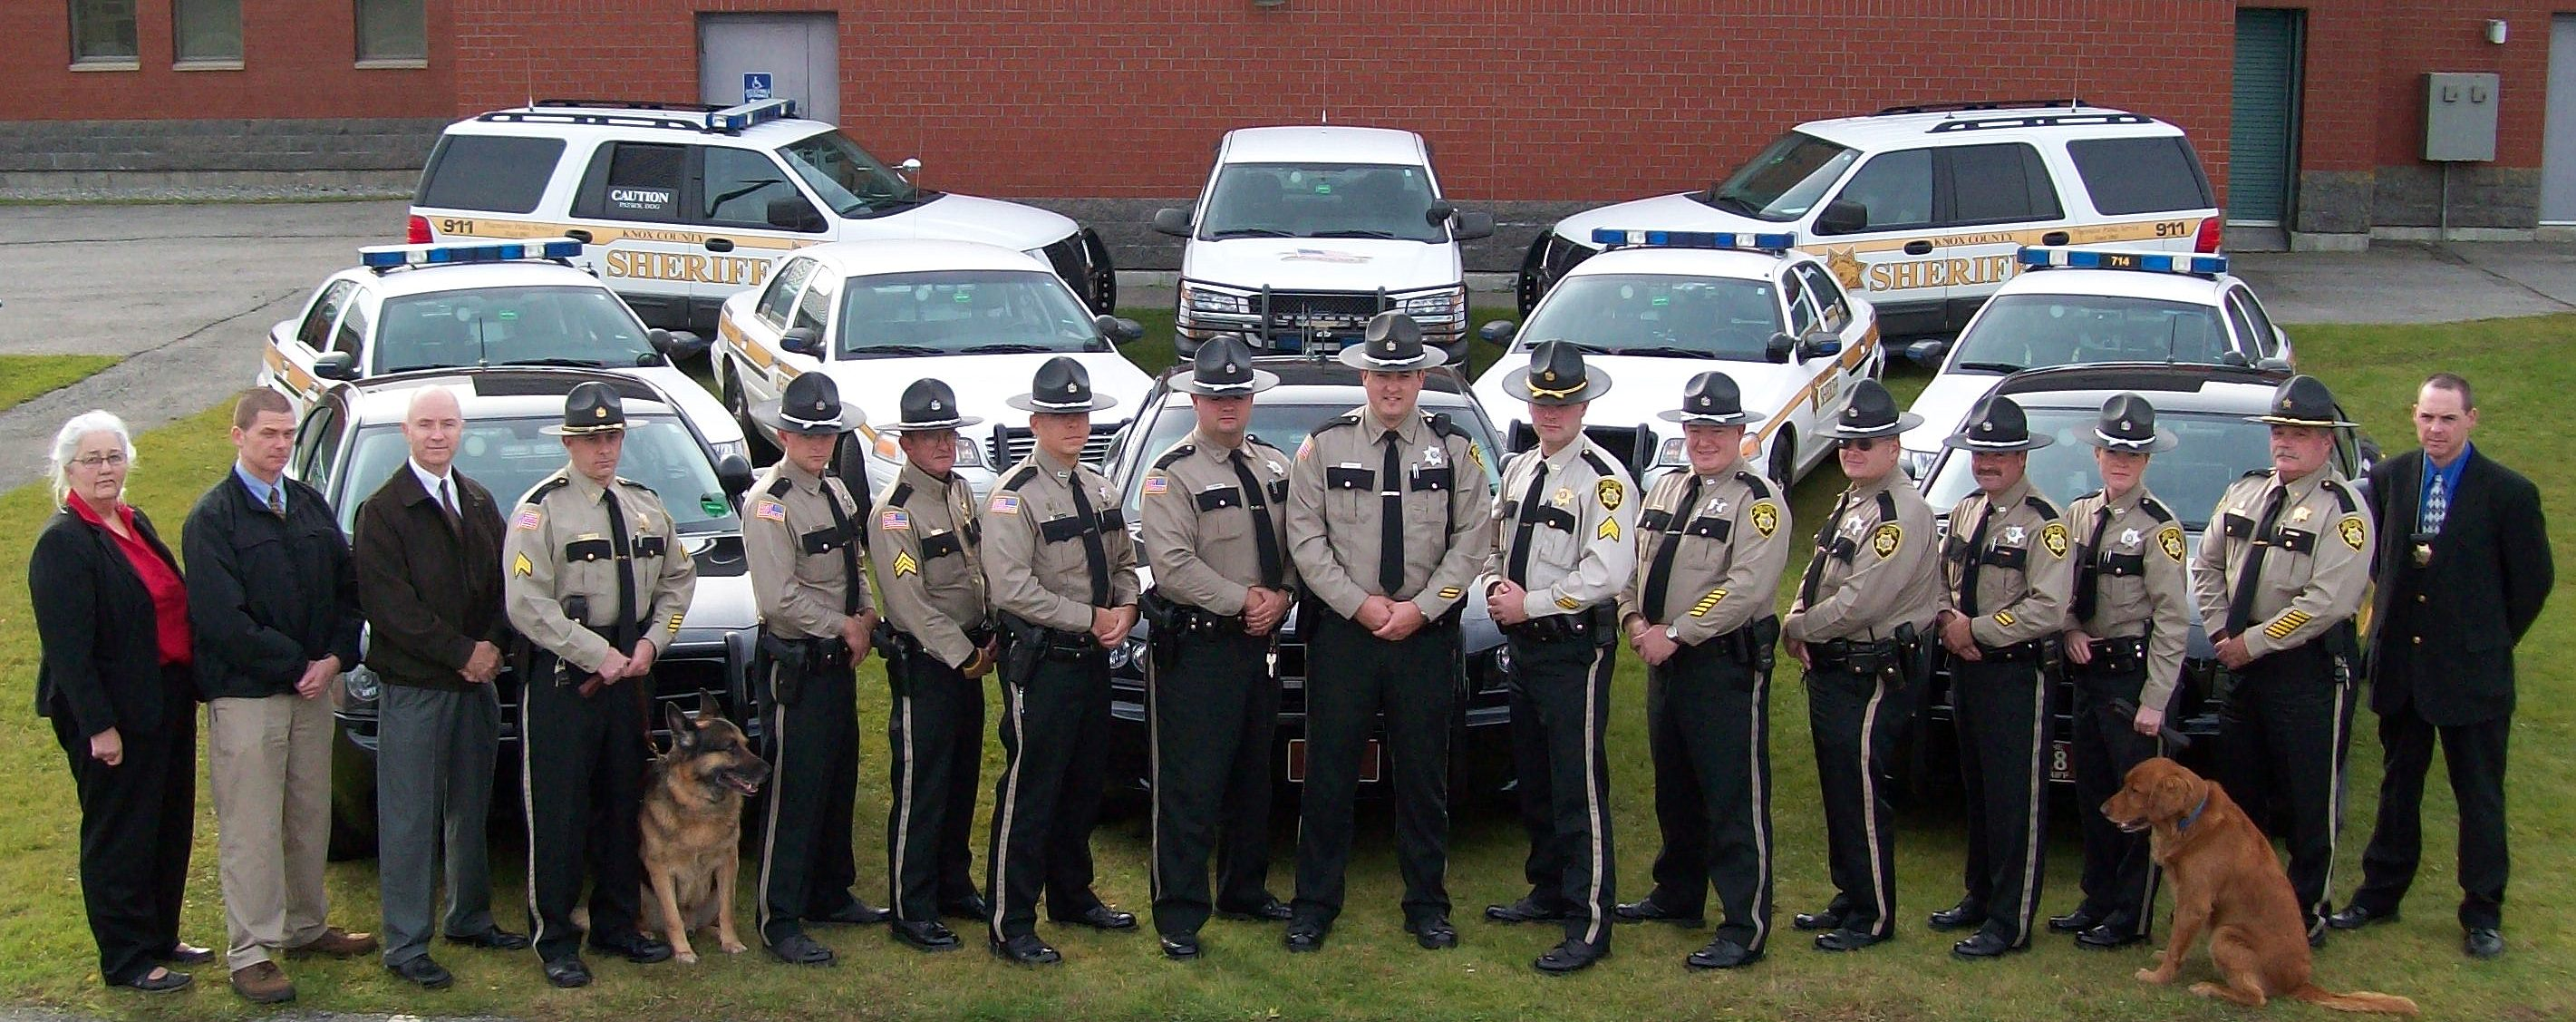 Knox County Sheriff's Department - Knox County